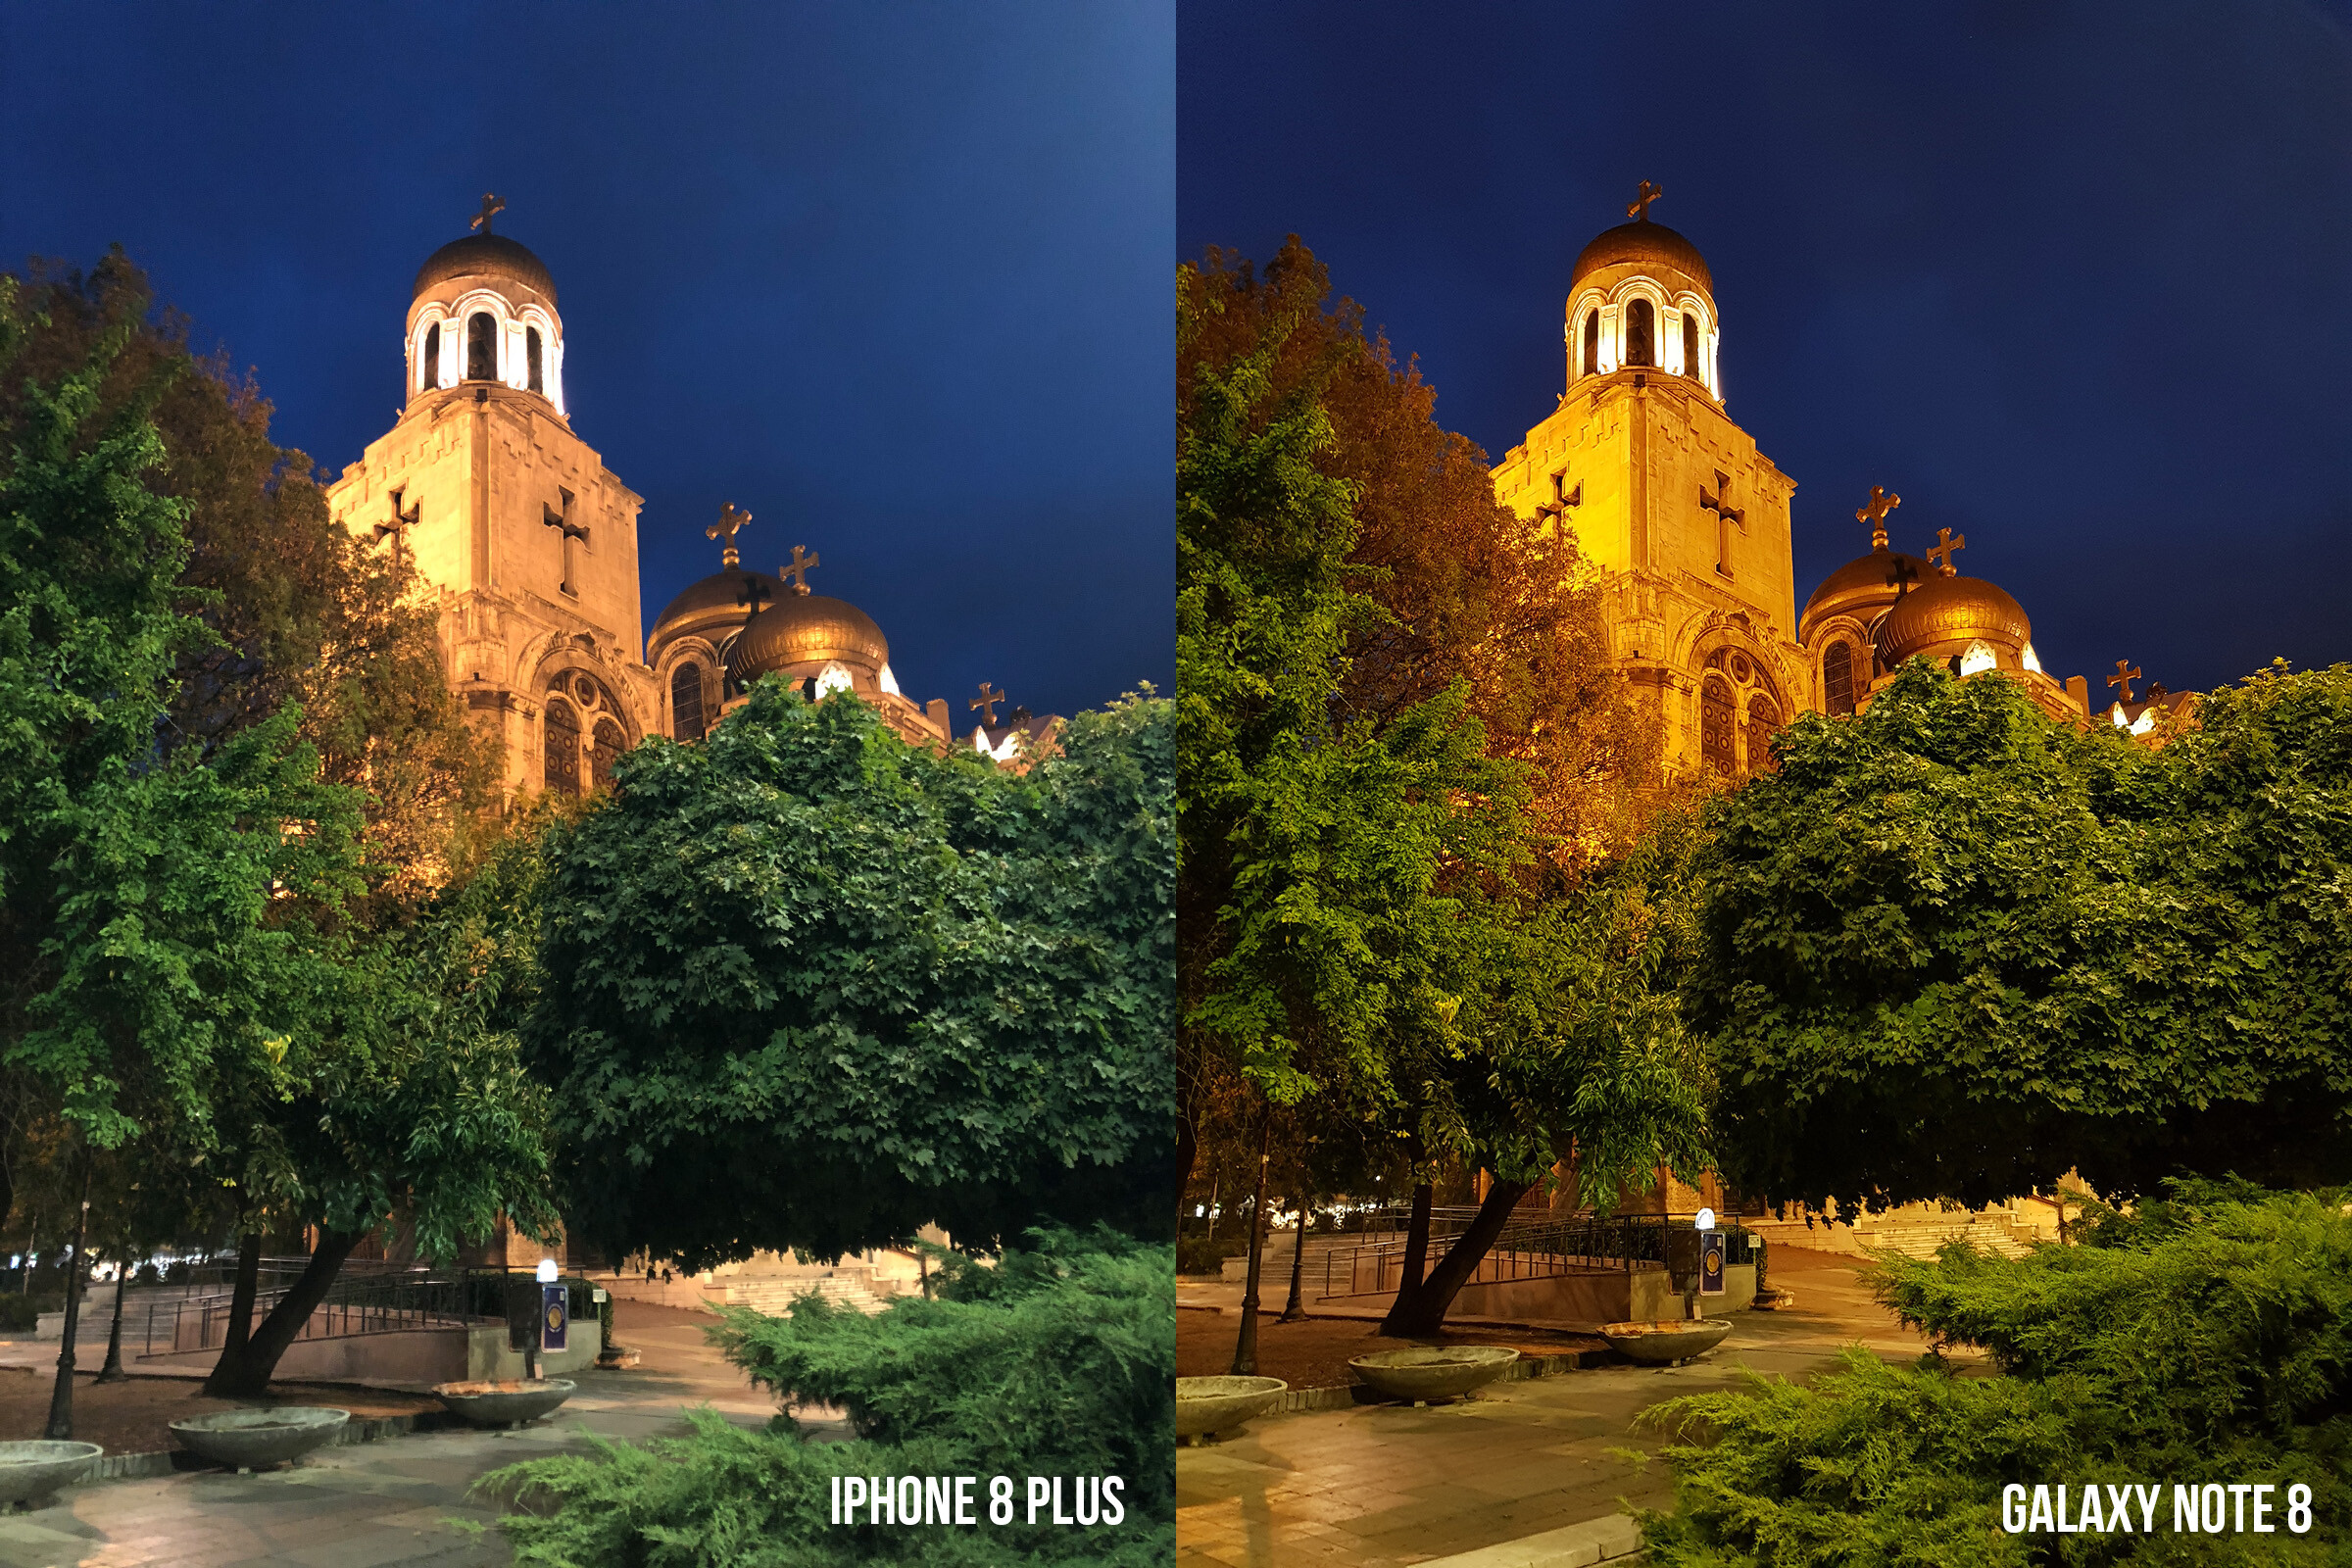 iPhone 8 Plus vs Galaxy Note 8 low-light camera comparison (cathedral) - image from iPhone 8 Plus vs Galaxy Note 8 low light camera shootout Which is ... & iPhone 8 Plus vs Galaxy Note 8 low-light camera comparison ... azcodes.com